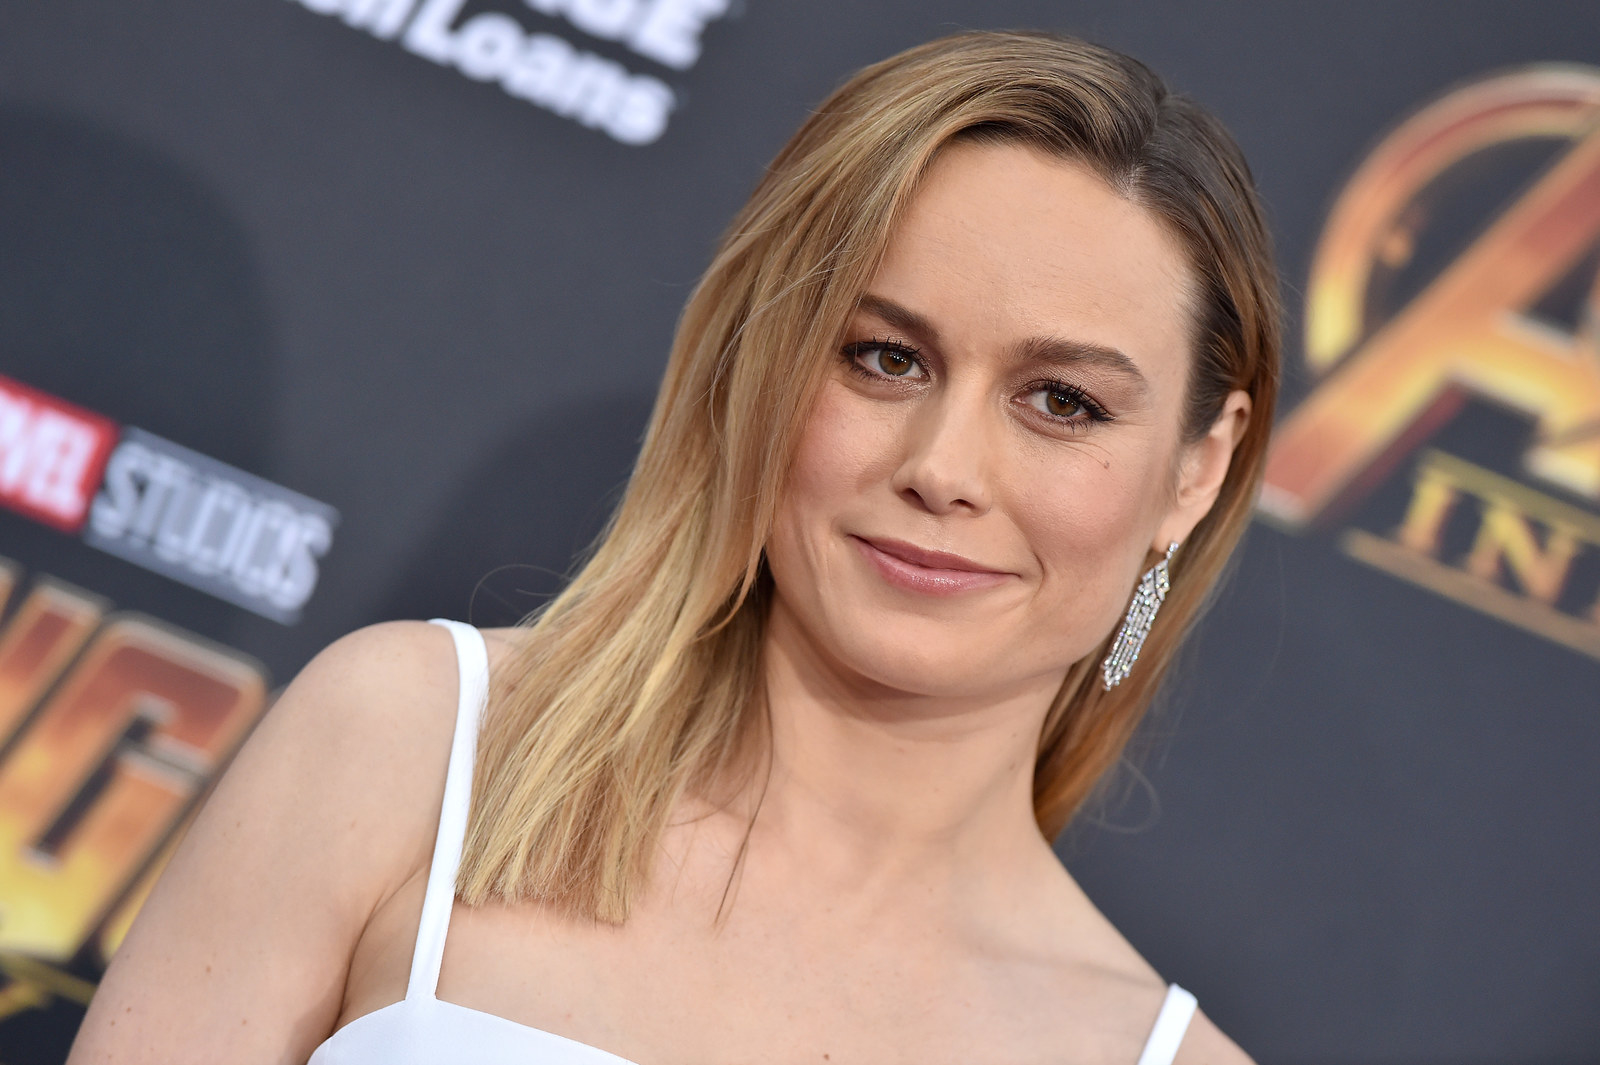 All right, so you know Brie Larson, yes?